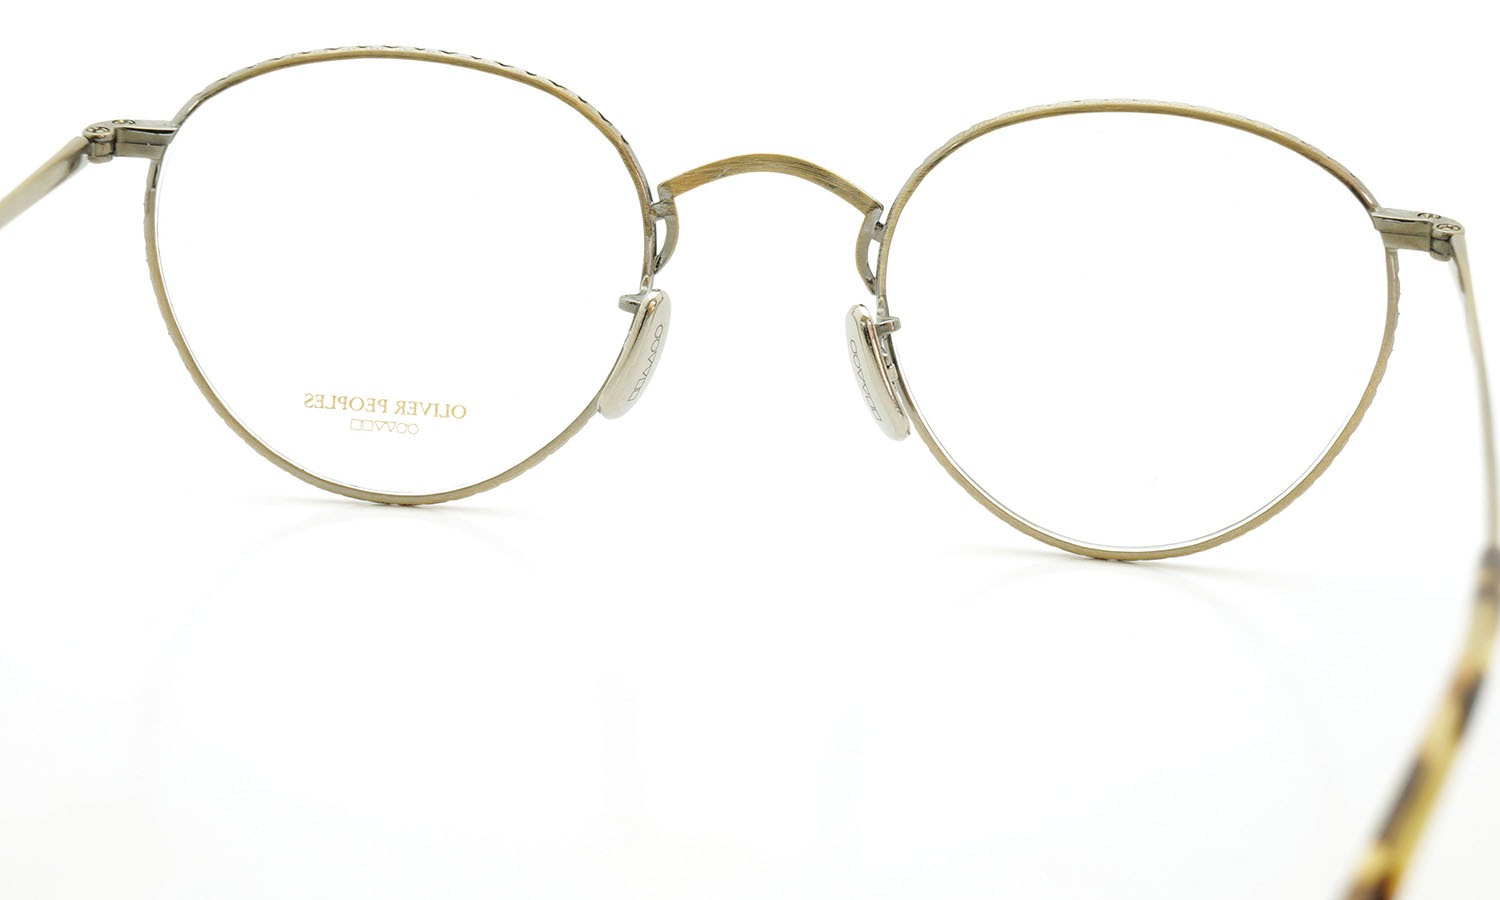 OLIVER PEOPLES (オリバーピープルズ) 2014年-2015秋冬 最新作メガネ OP-47T AG 9